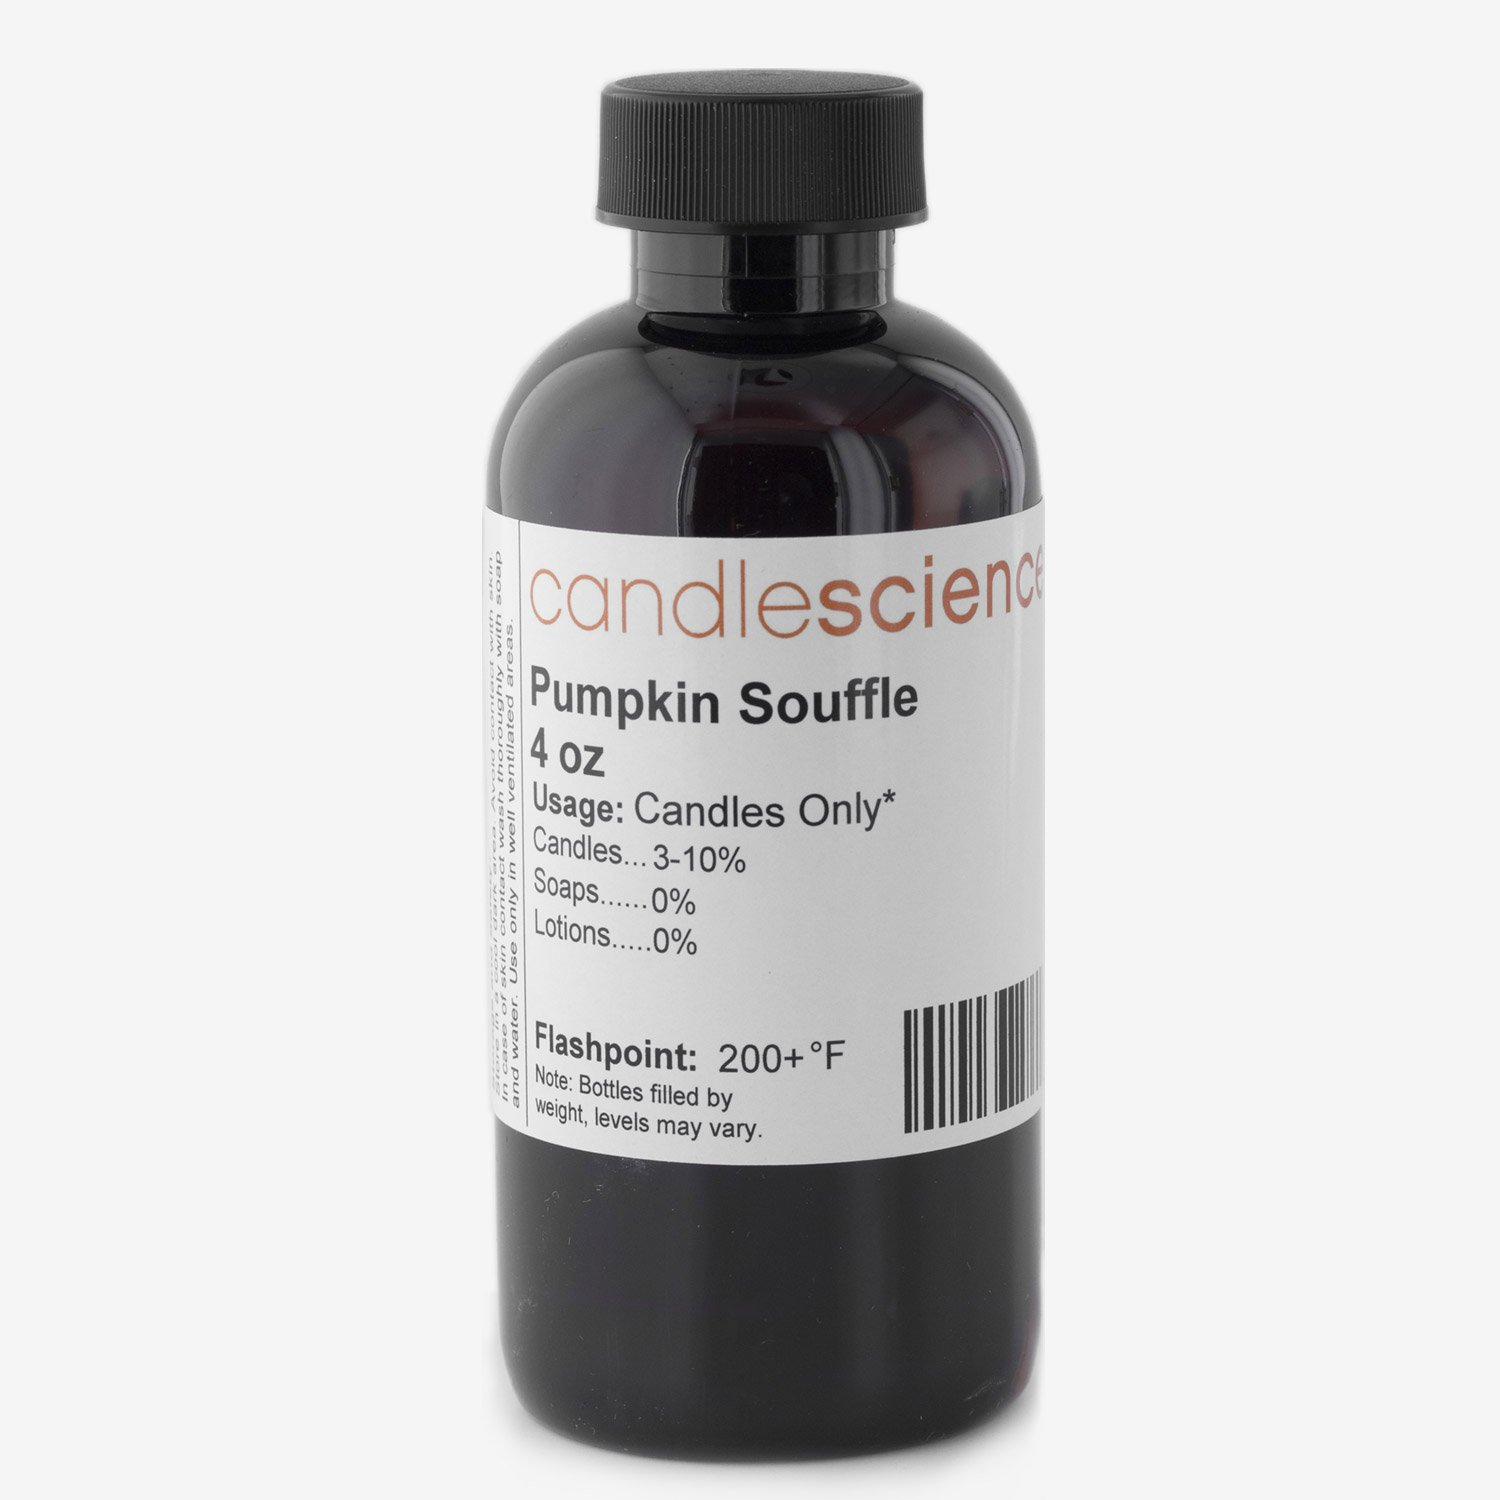 CandleScience - Pumpkin Souffle - Candle Scent 4 oz. - with Butter, Sugar and Spices - Infused with natural essential oils - Great for candlemaking